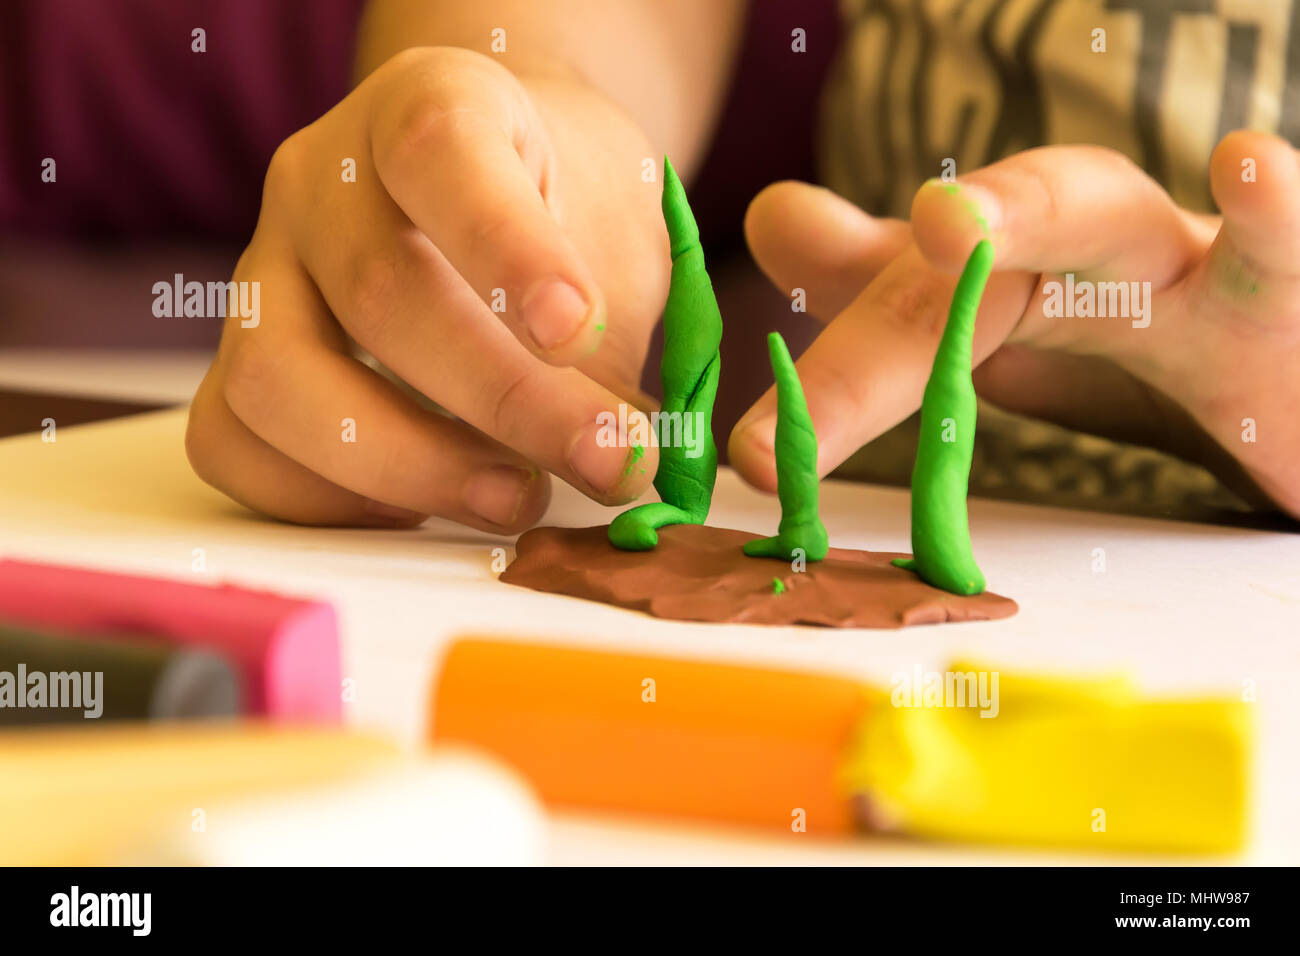 Child playing with plasticine, modeling tree. Developing imagination and creativity. - Stock Image